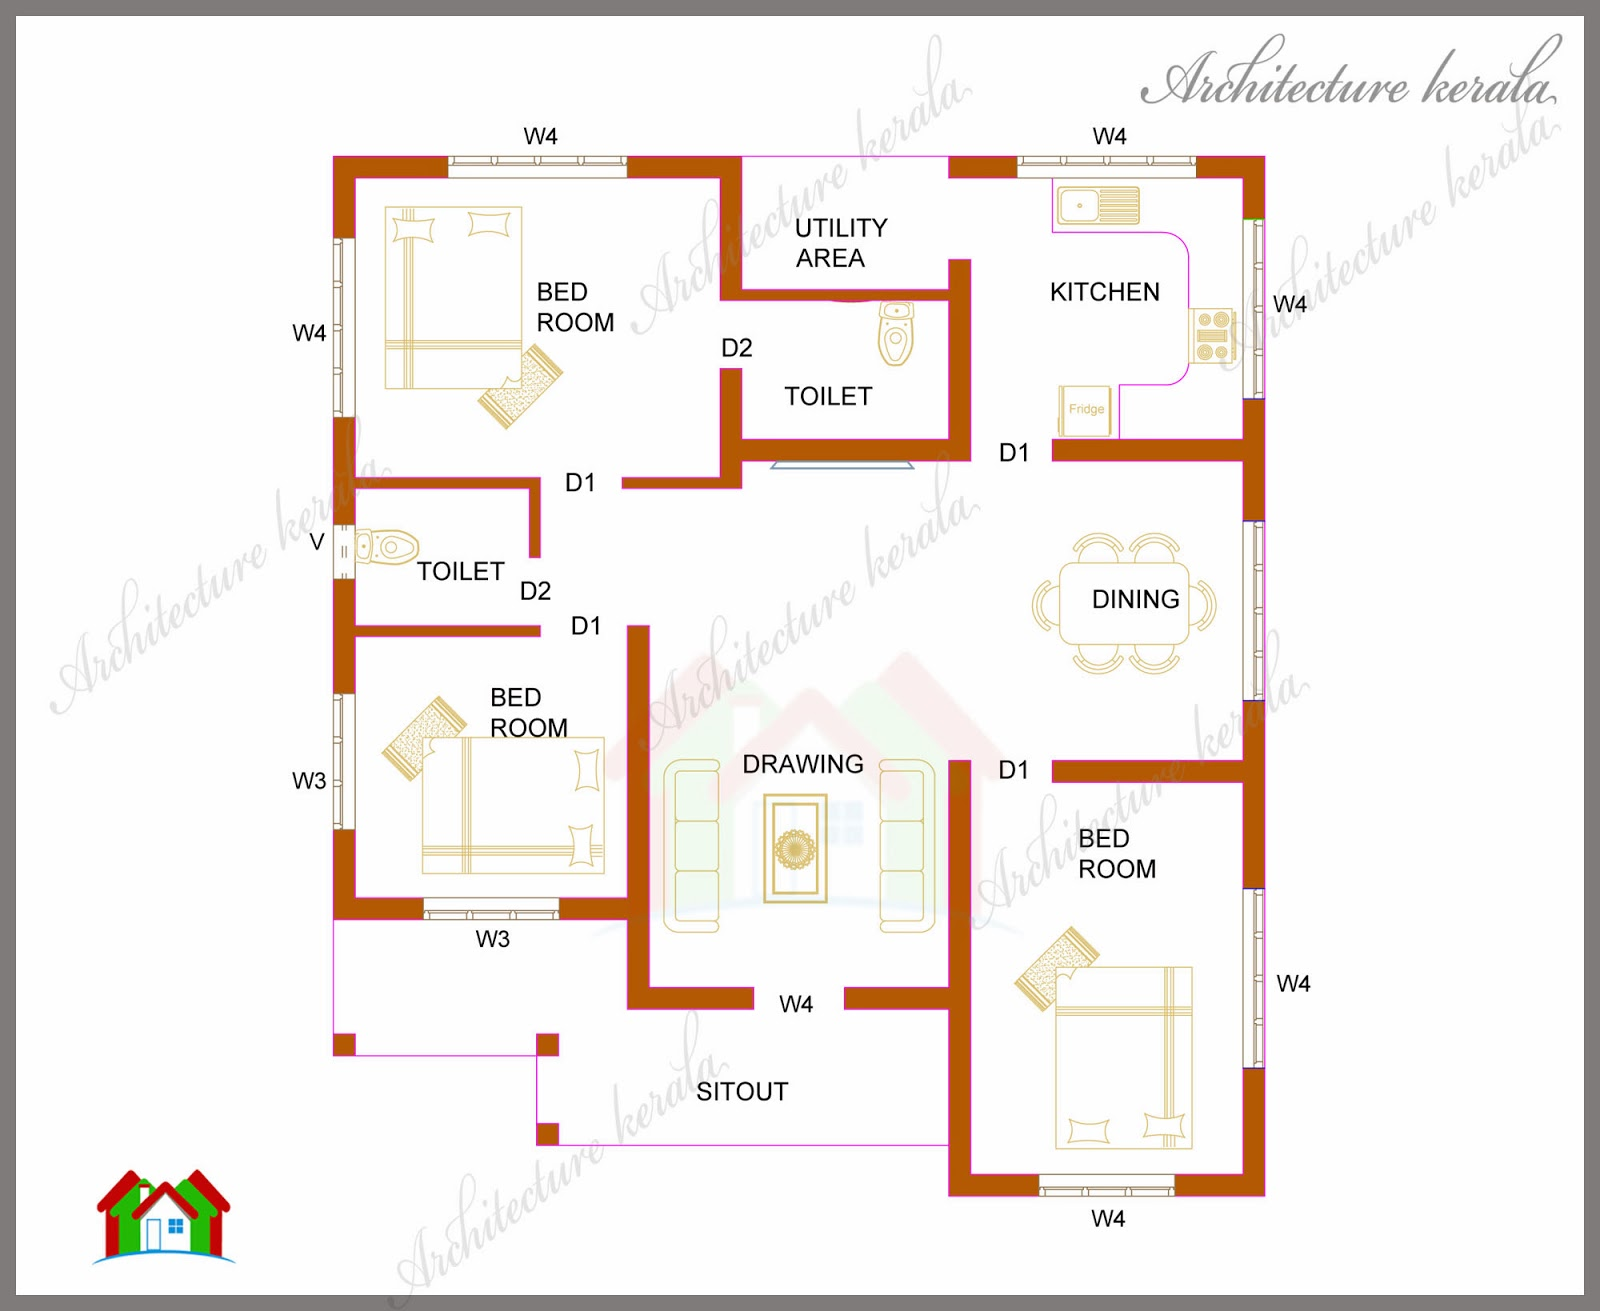 Three bedrooms in 1200 square feet kerala house plan architecture kerala - Three bedroom house floor plans ...